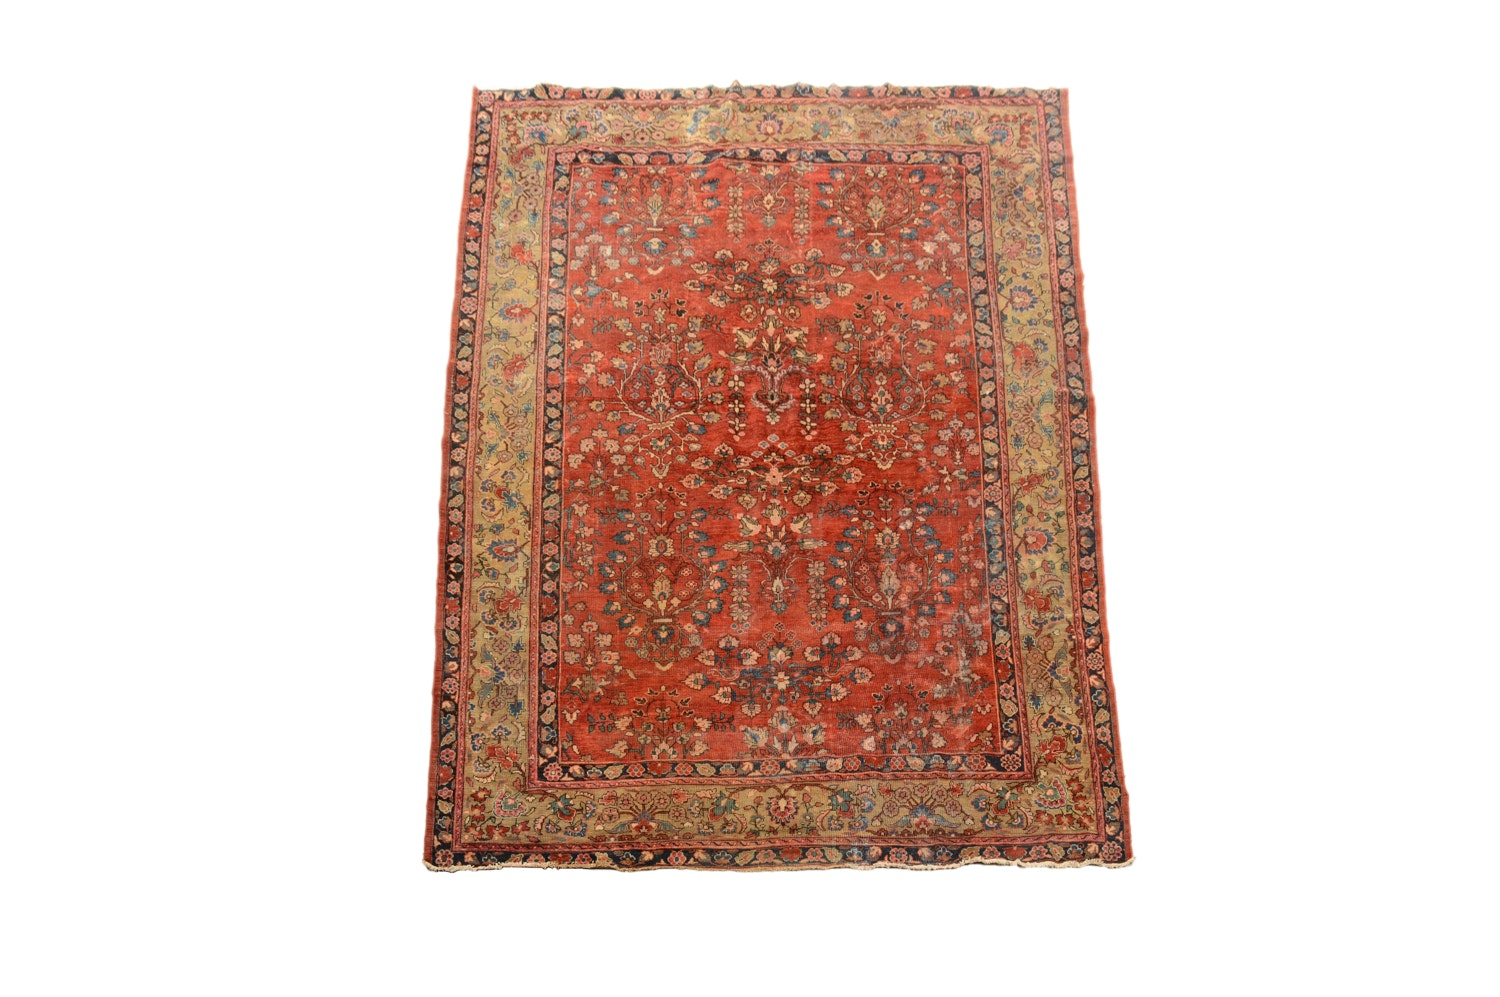 Hand-Knotted Persian Sarouk Wool Rug from Oscar Isberian Rugs